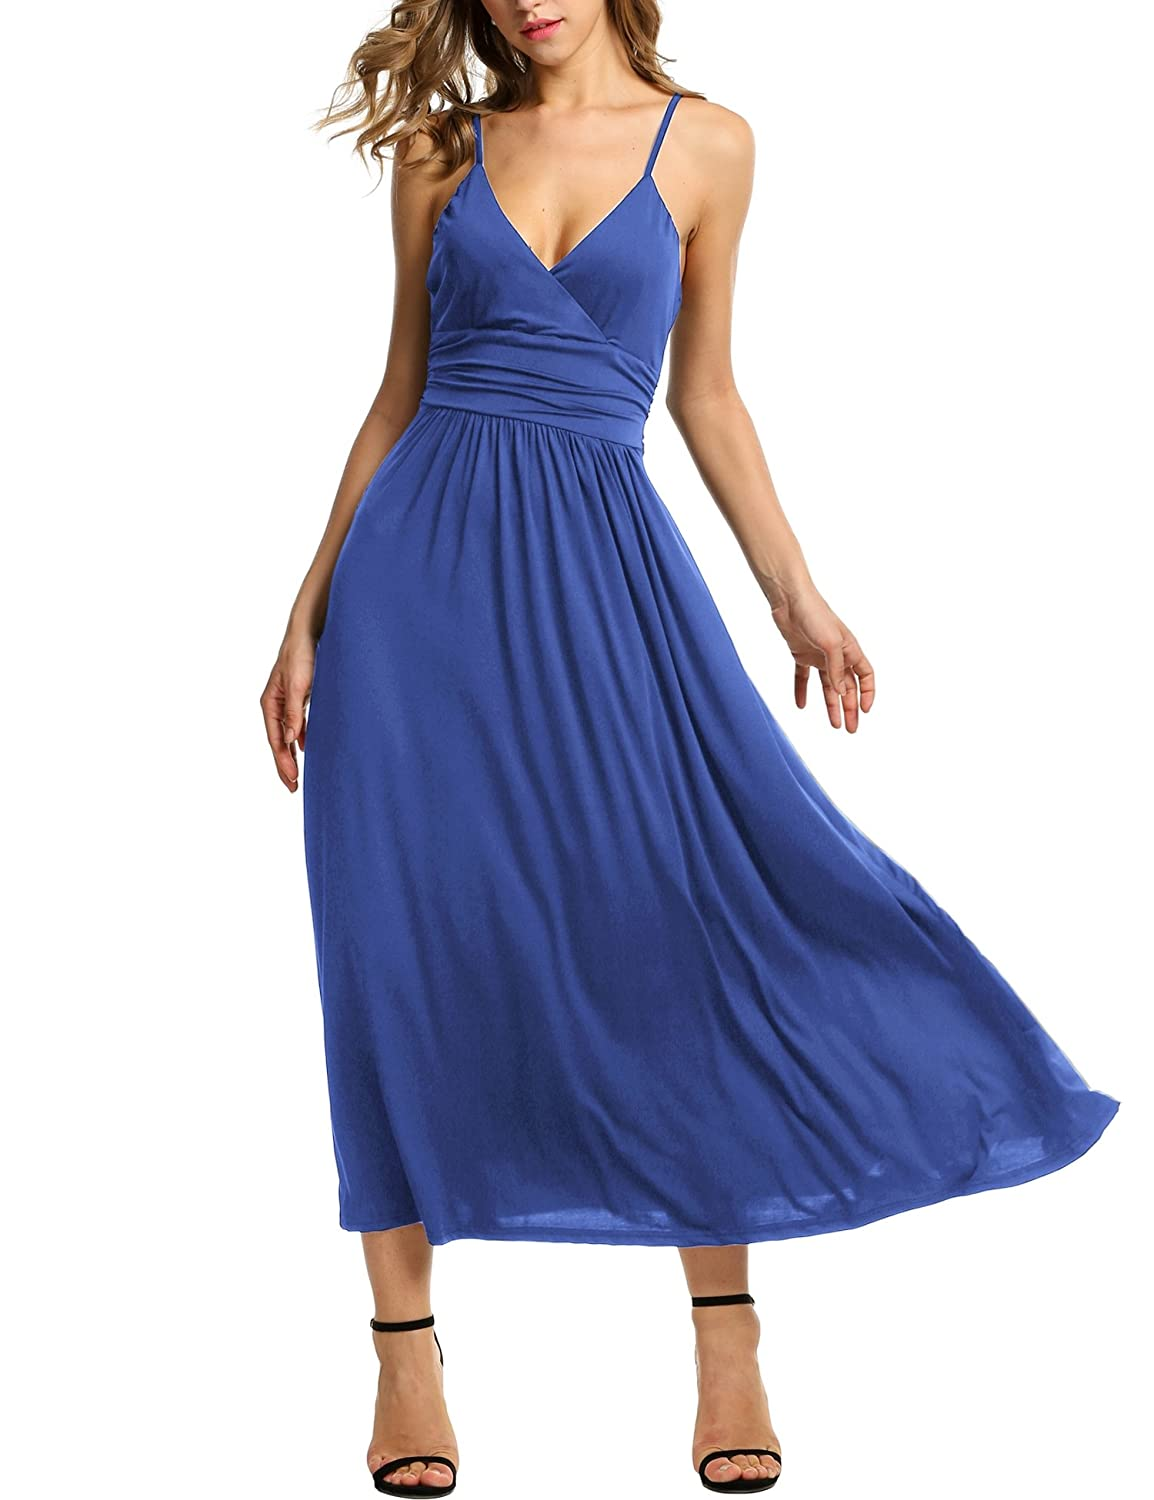 Meaneor Women's V-neck Empire Waist Maxi Dress Spaghetti Strap Wrap Long Dress MA004908#